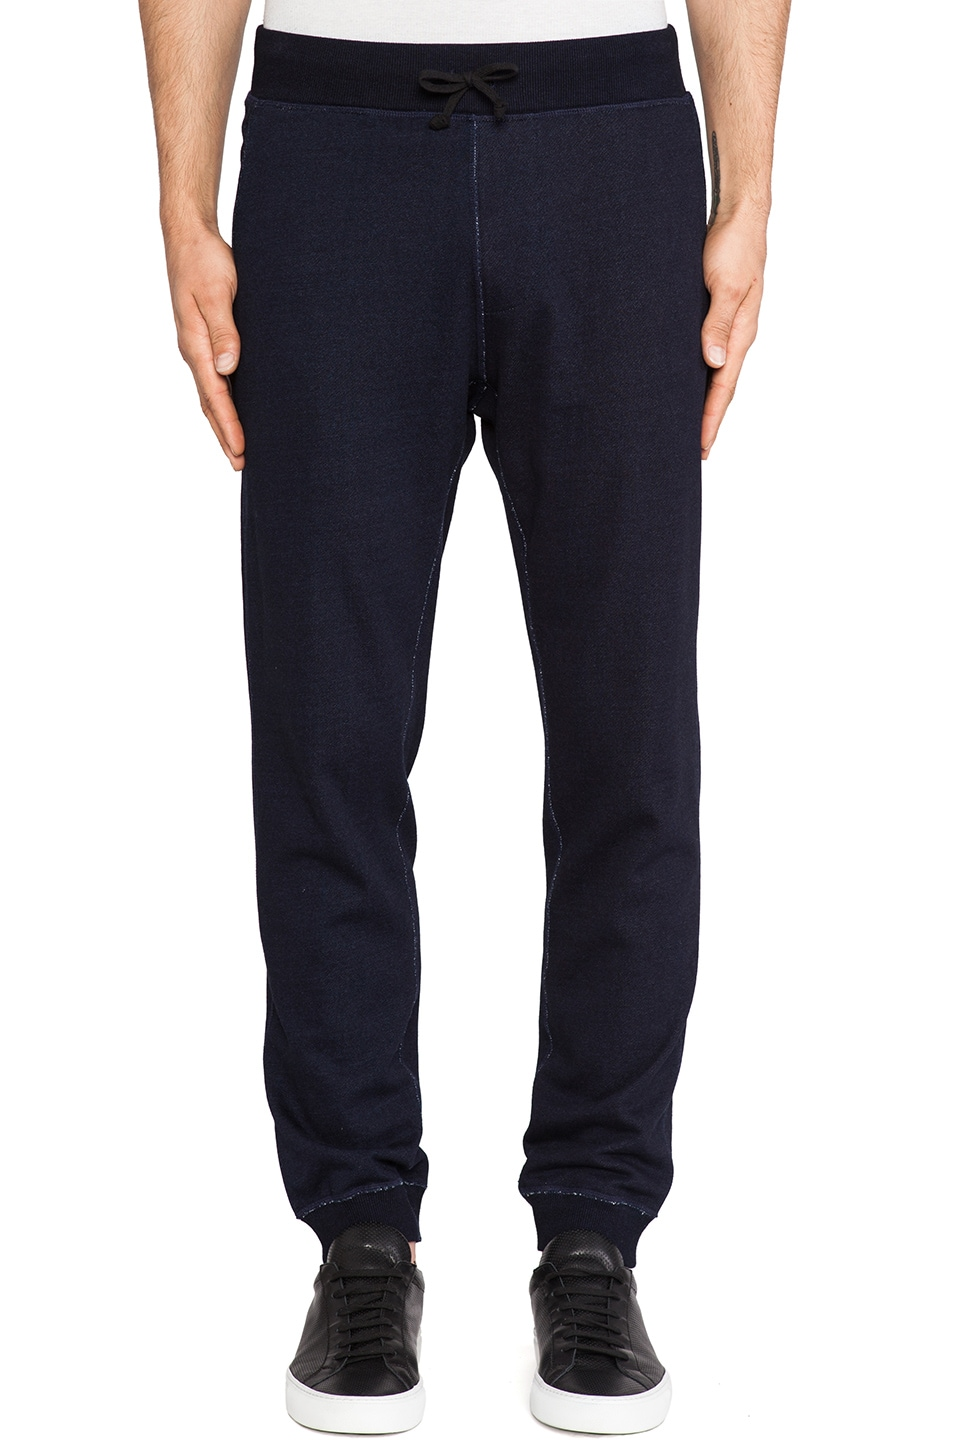 wings + horns Sashiko Print Lounge Pant in Indigo